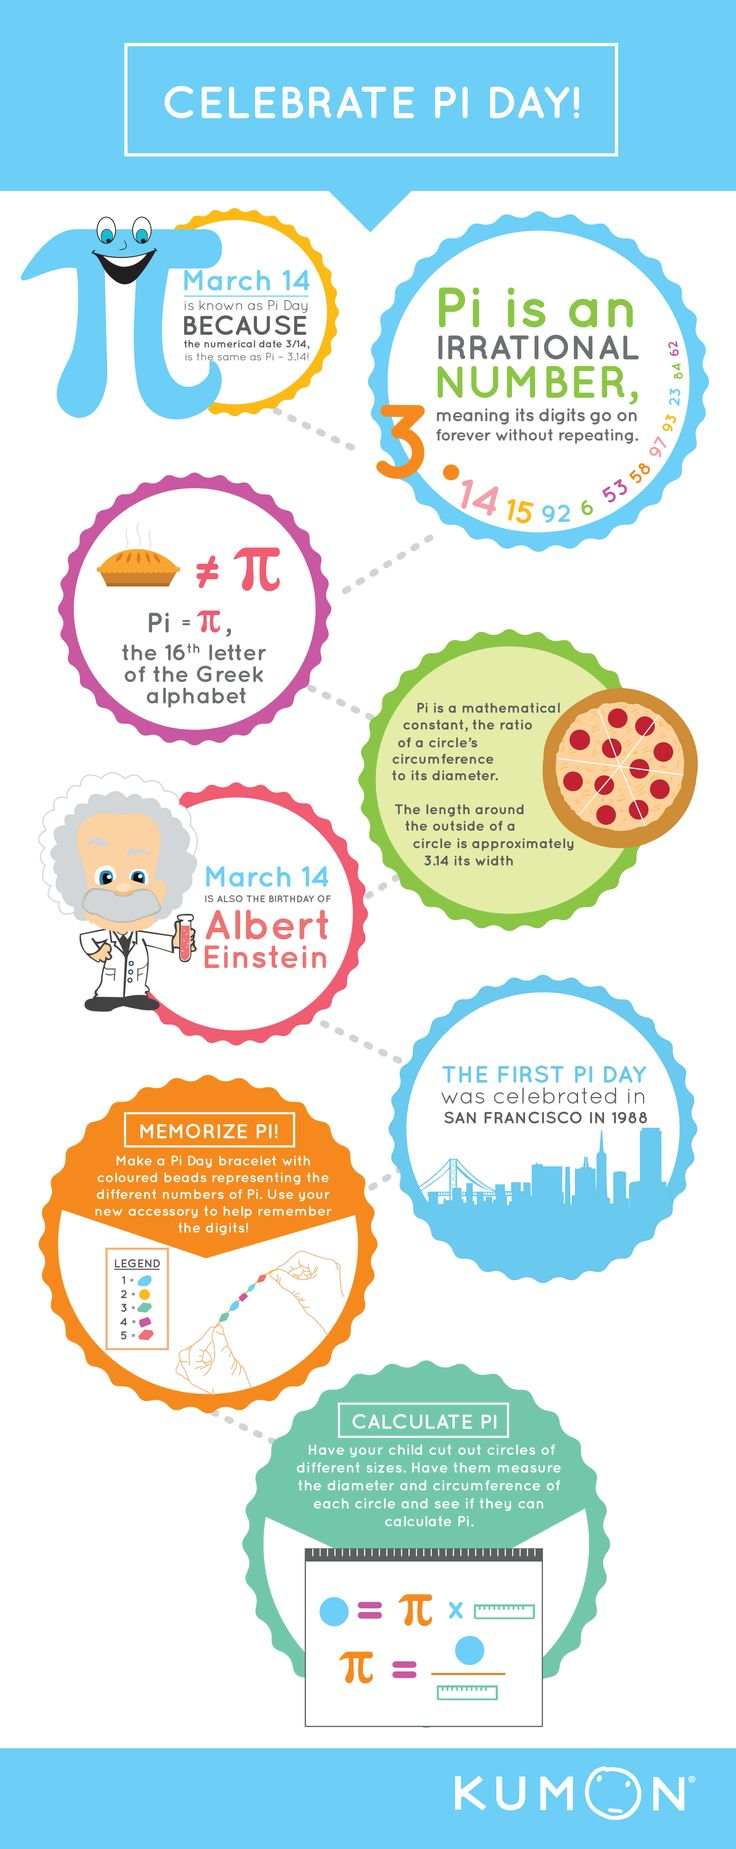 Kumon Pi day infographic - so many facts about Pi, the 3.14 we all know and love.